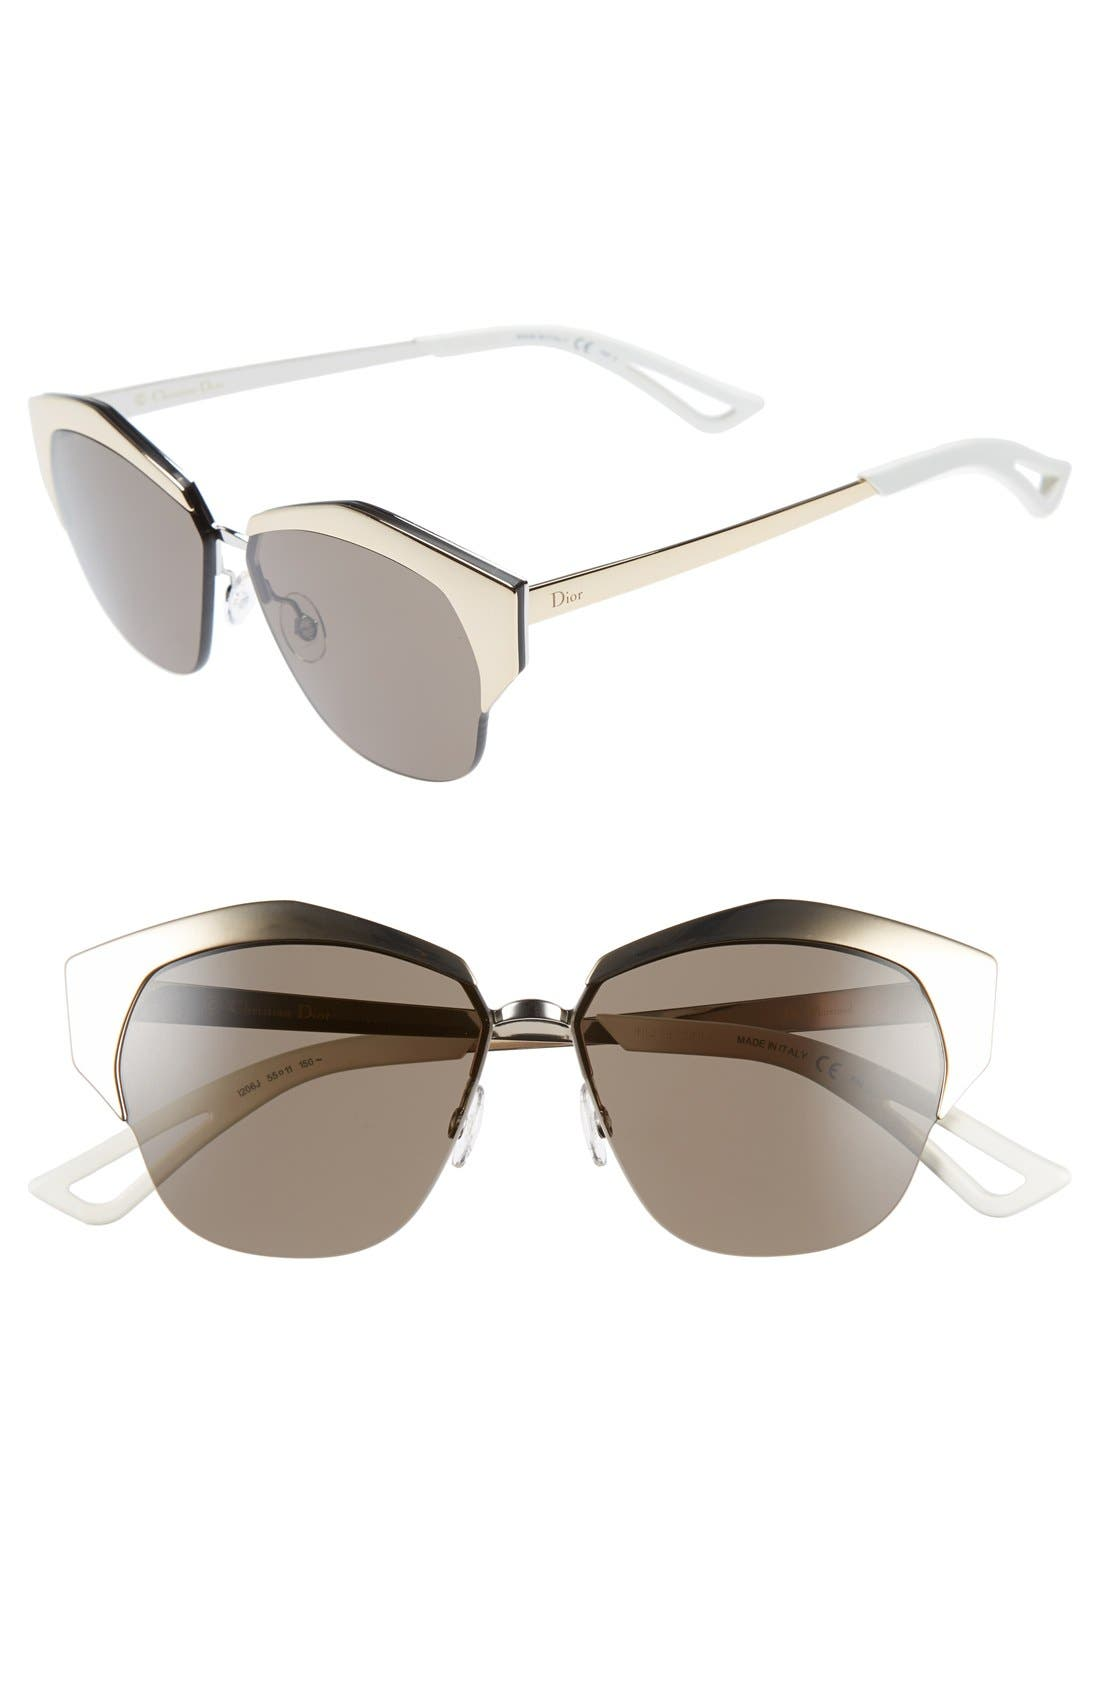 Main Image - Dior 'Mirrors' 55mm Cat Eye Sunglasses (Regular Retail Price: $490.00)